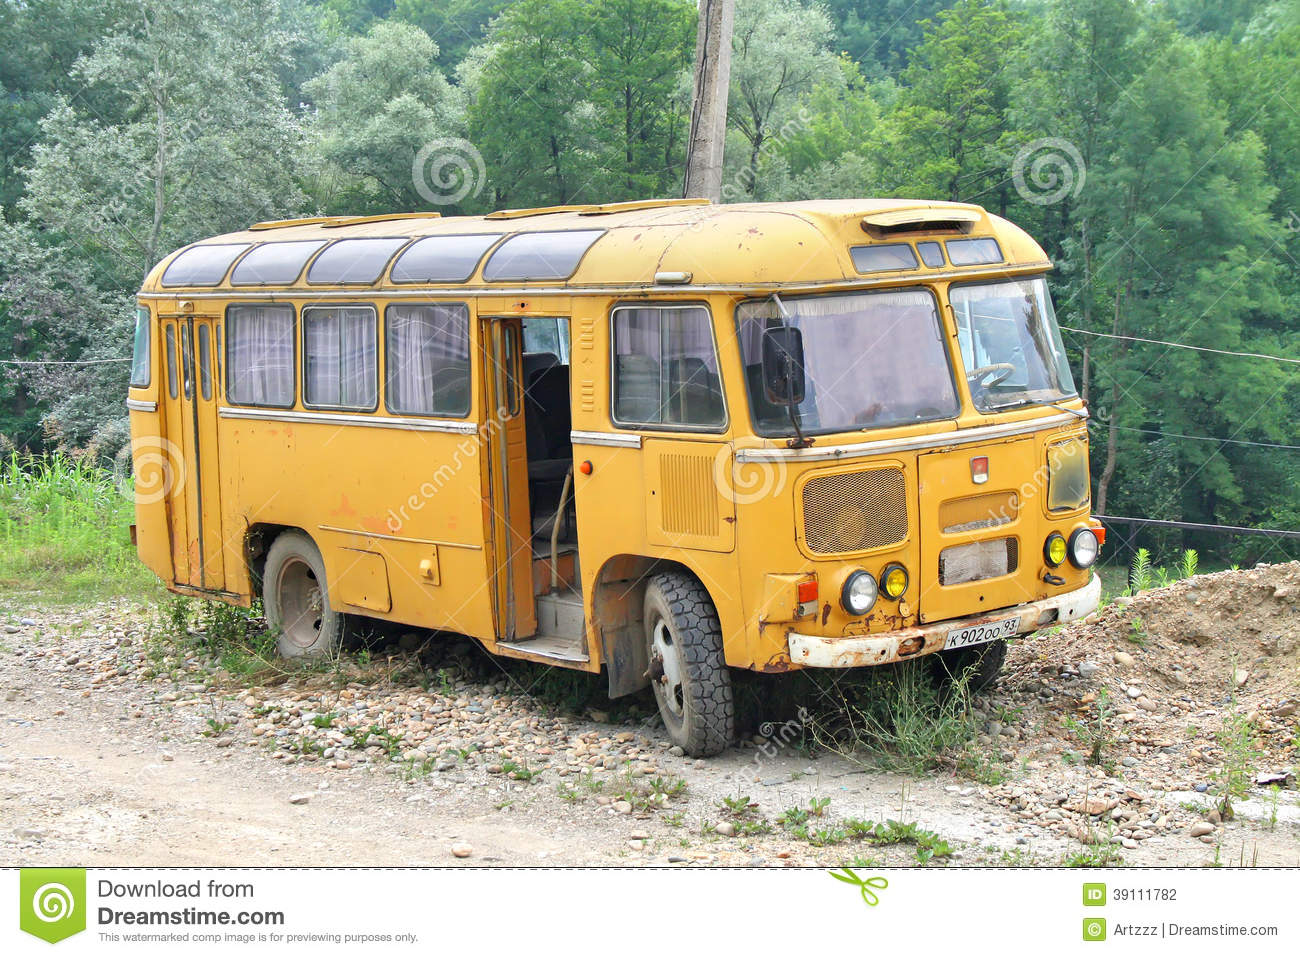 mercedes benz sls amg video download with Stock Photography Paz M Krasnodar Krai Russia July Yellow Vintage Bus Near Forest Image39111782 on Most Viewed furthermore Mercedes Background 23531 in addition 593 2013 Mercedes Benz Sls Amg Gt 11 furthermore 1030519 besides Burj Al Arab Wallpapers.